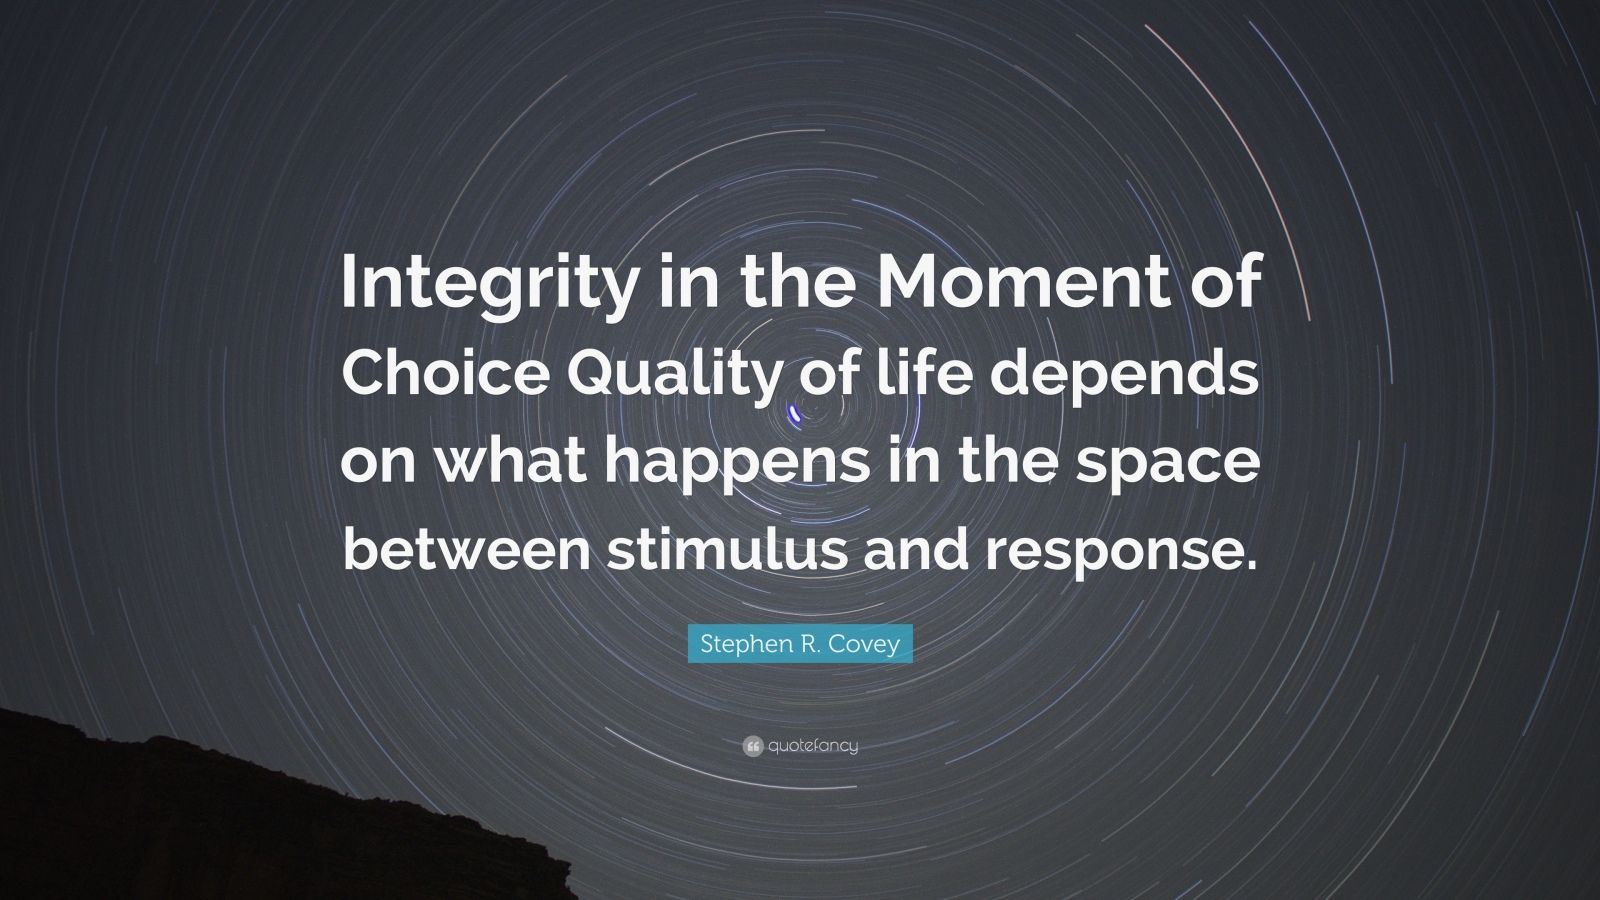 """Stephen R. Covey Quote: """"Integrity in the Moment of Choice Quality of life depends on what happens in the space between stimulus and response."""""""